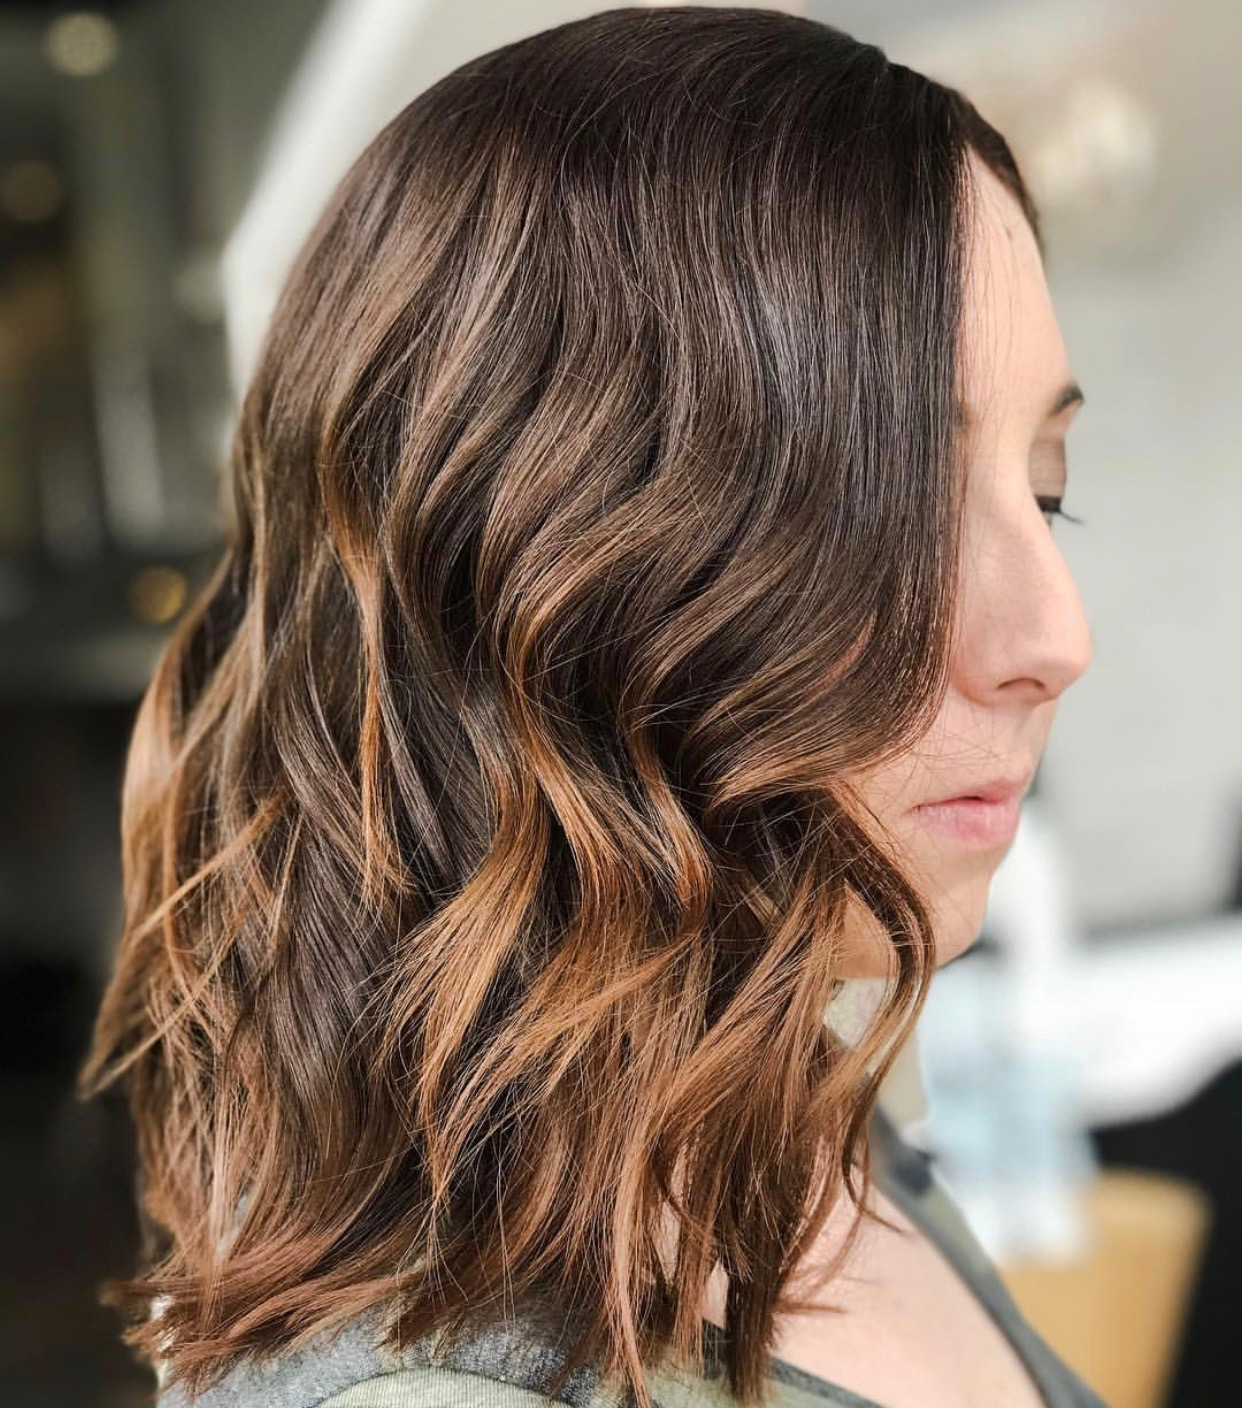 Hair Color Dallas Texas